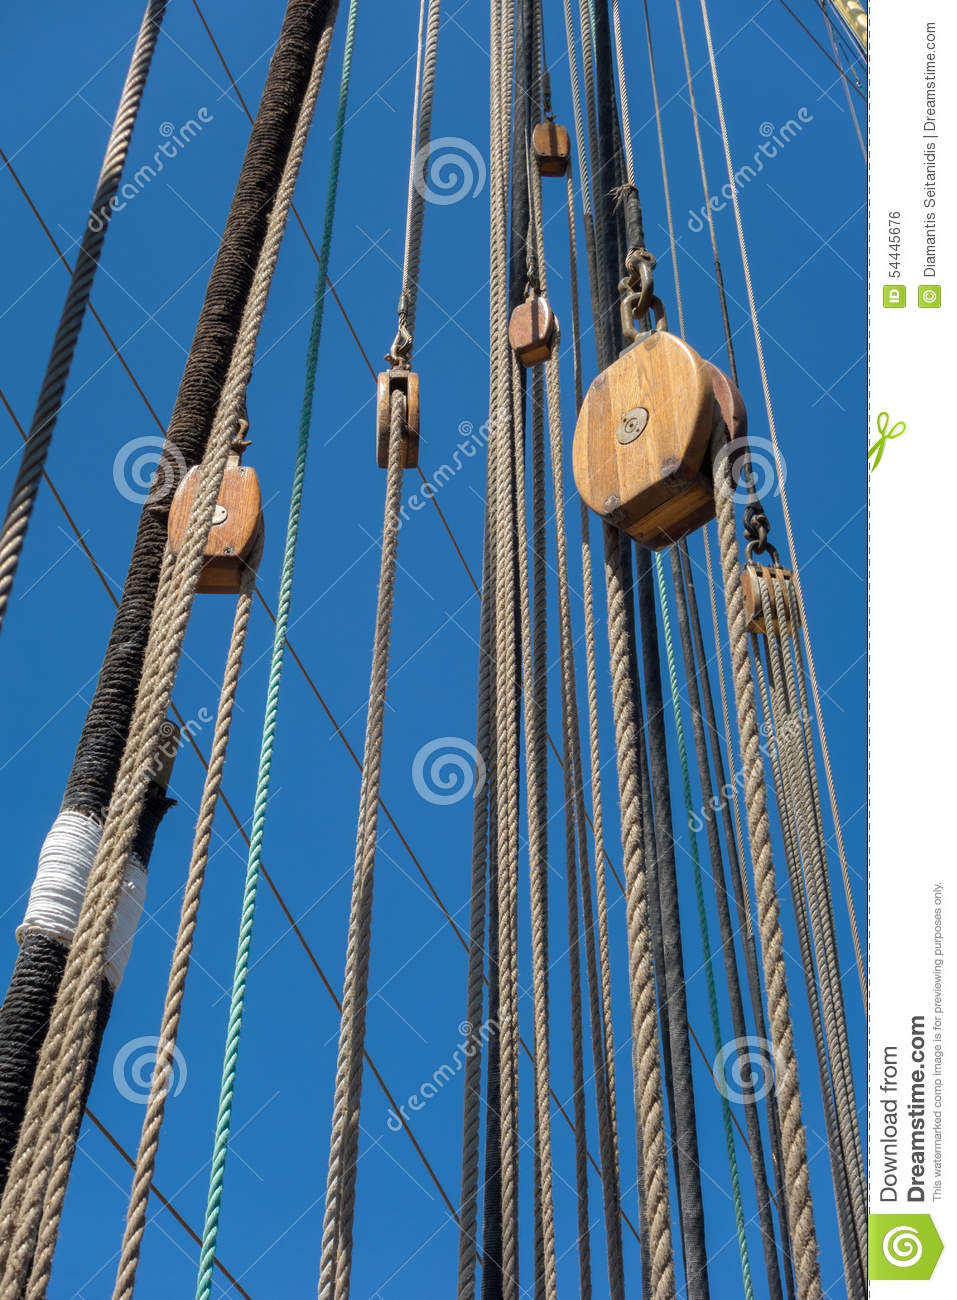 Marine Rope Ladder At Pirate Ship Stock Photo - Image: 54445676 for Rope Ladder Ship  177nar